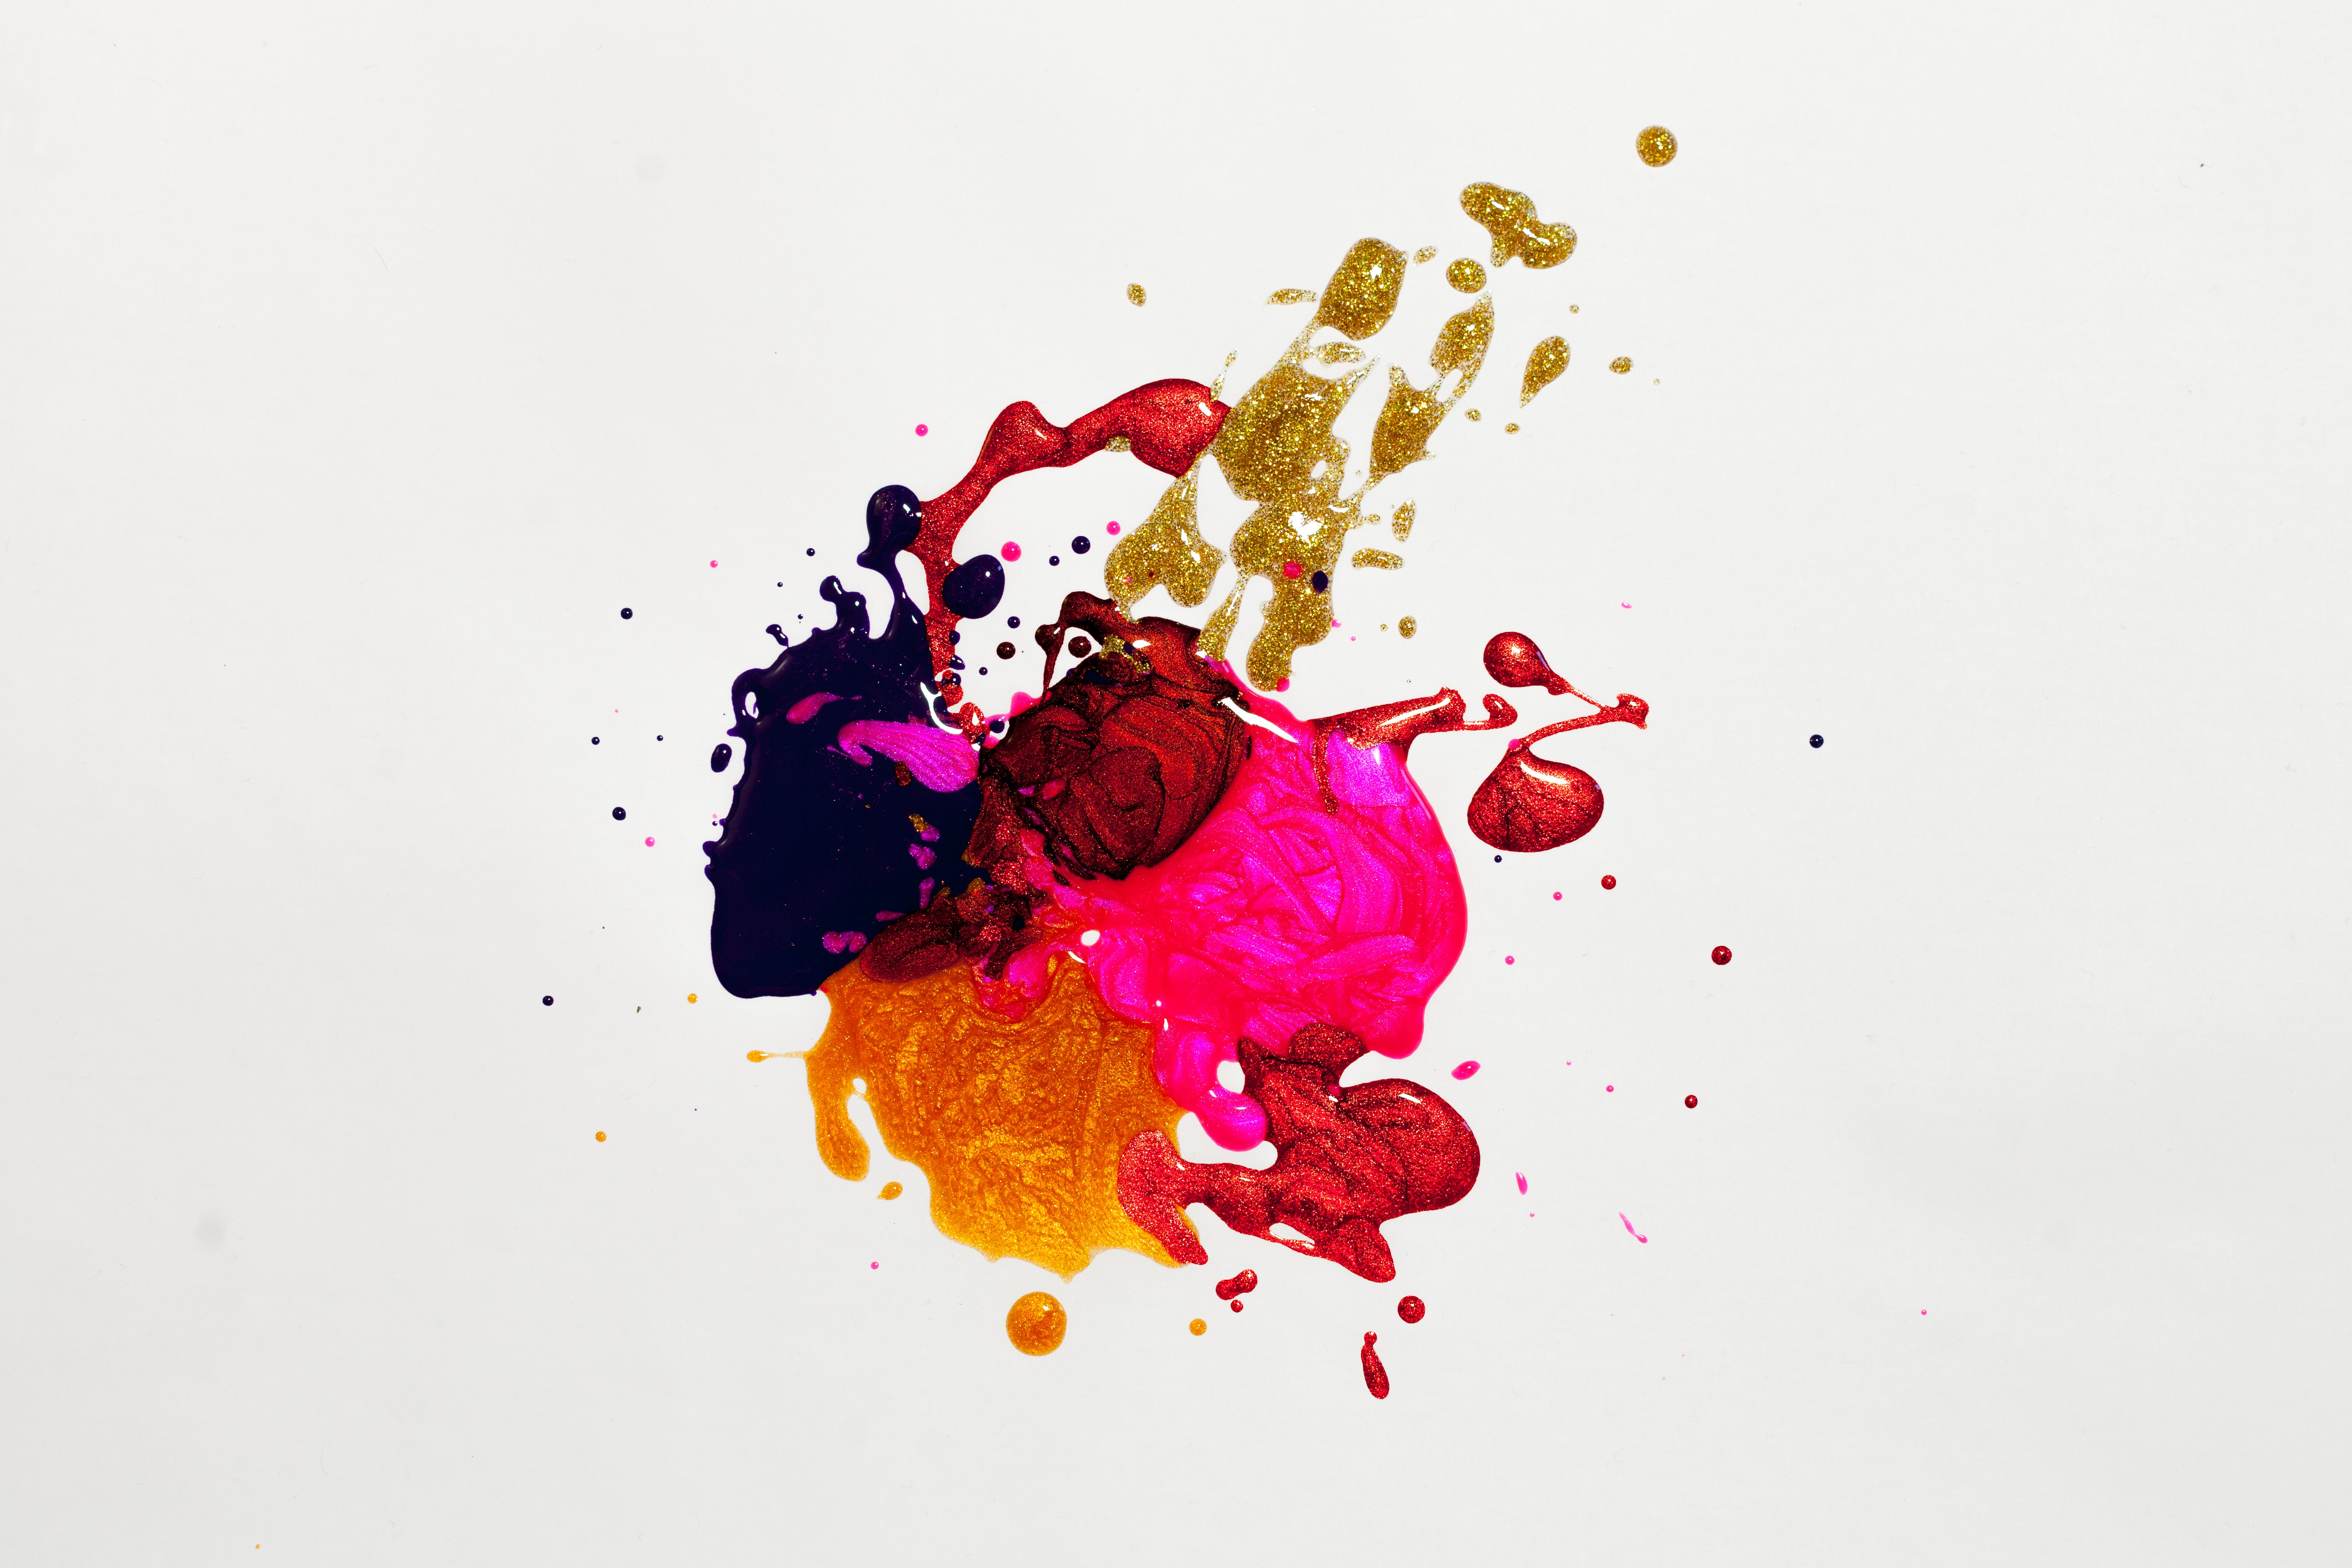 Colourful and vibrant paint splashes